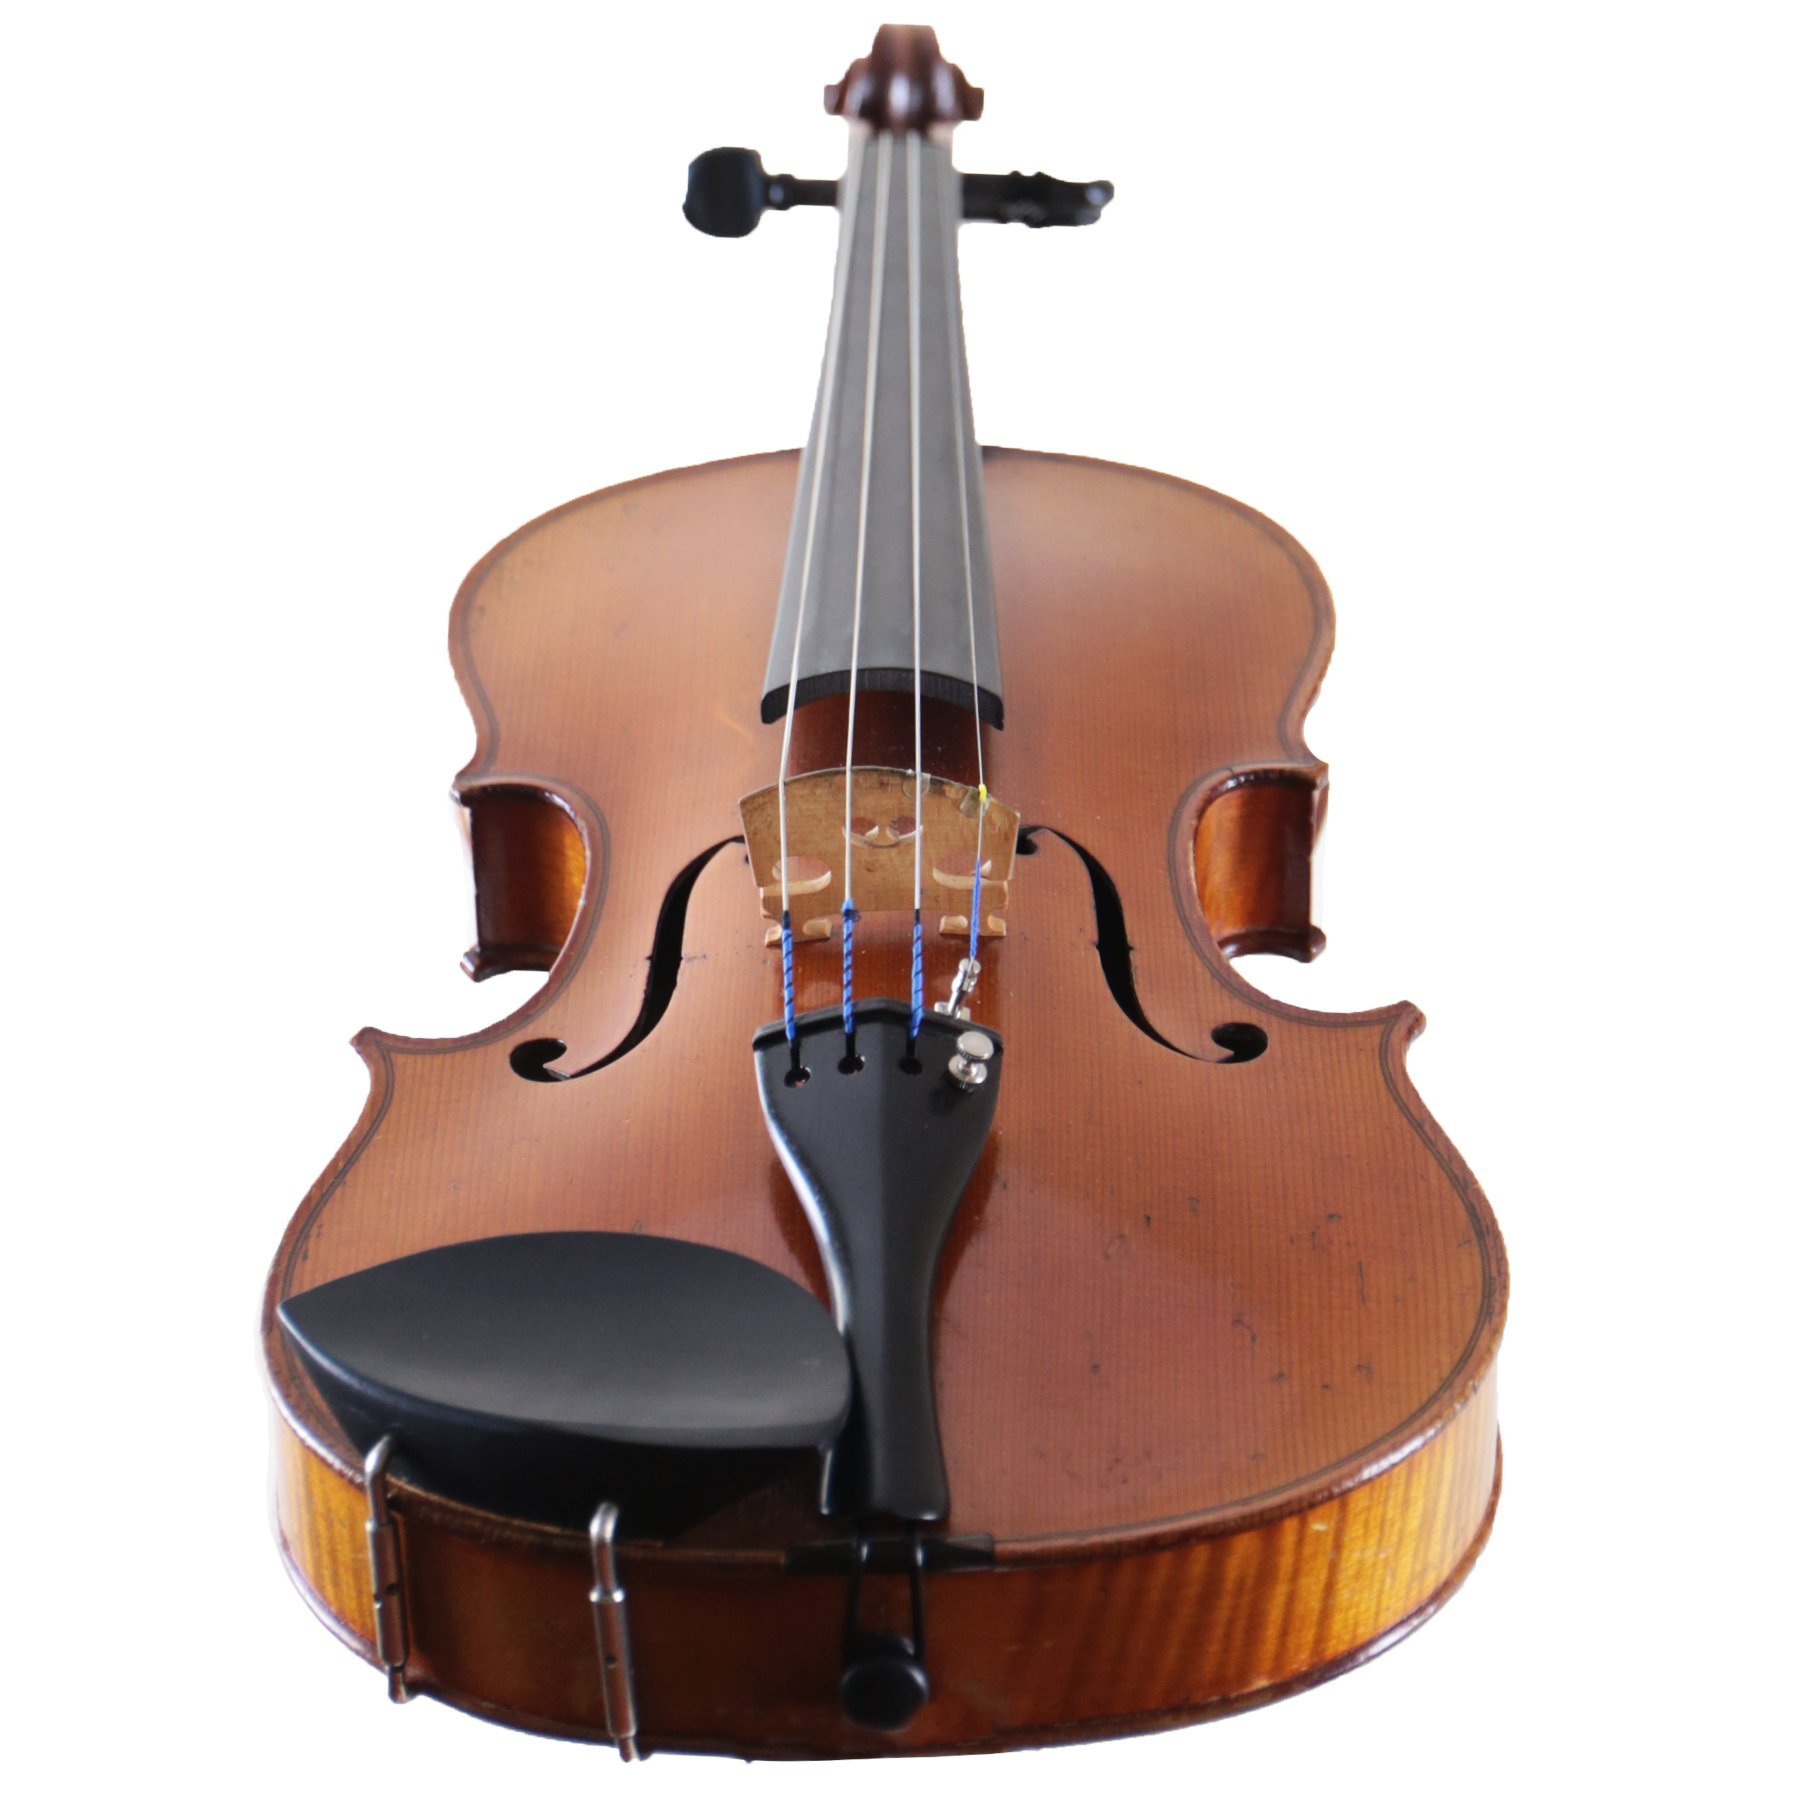 Louis Joly Violin in action